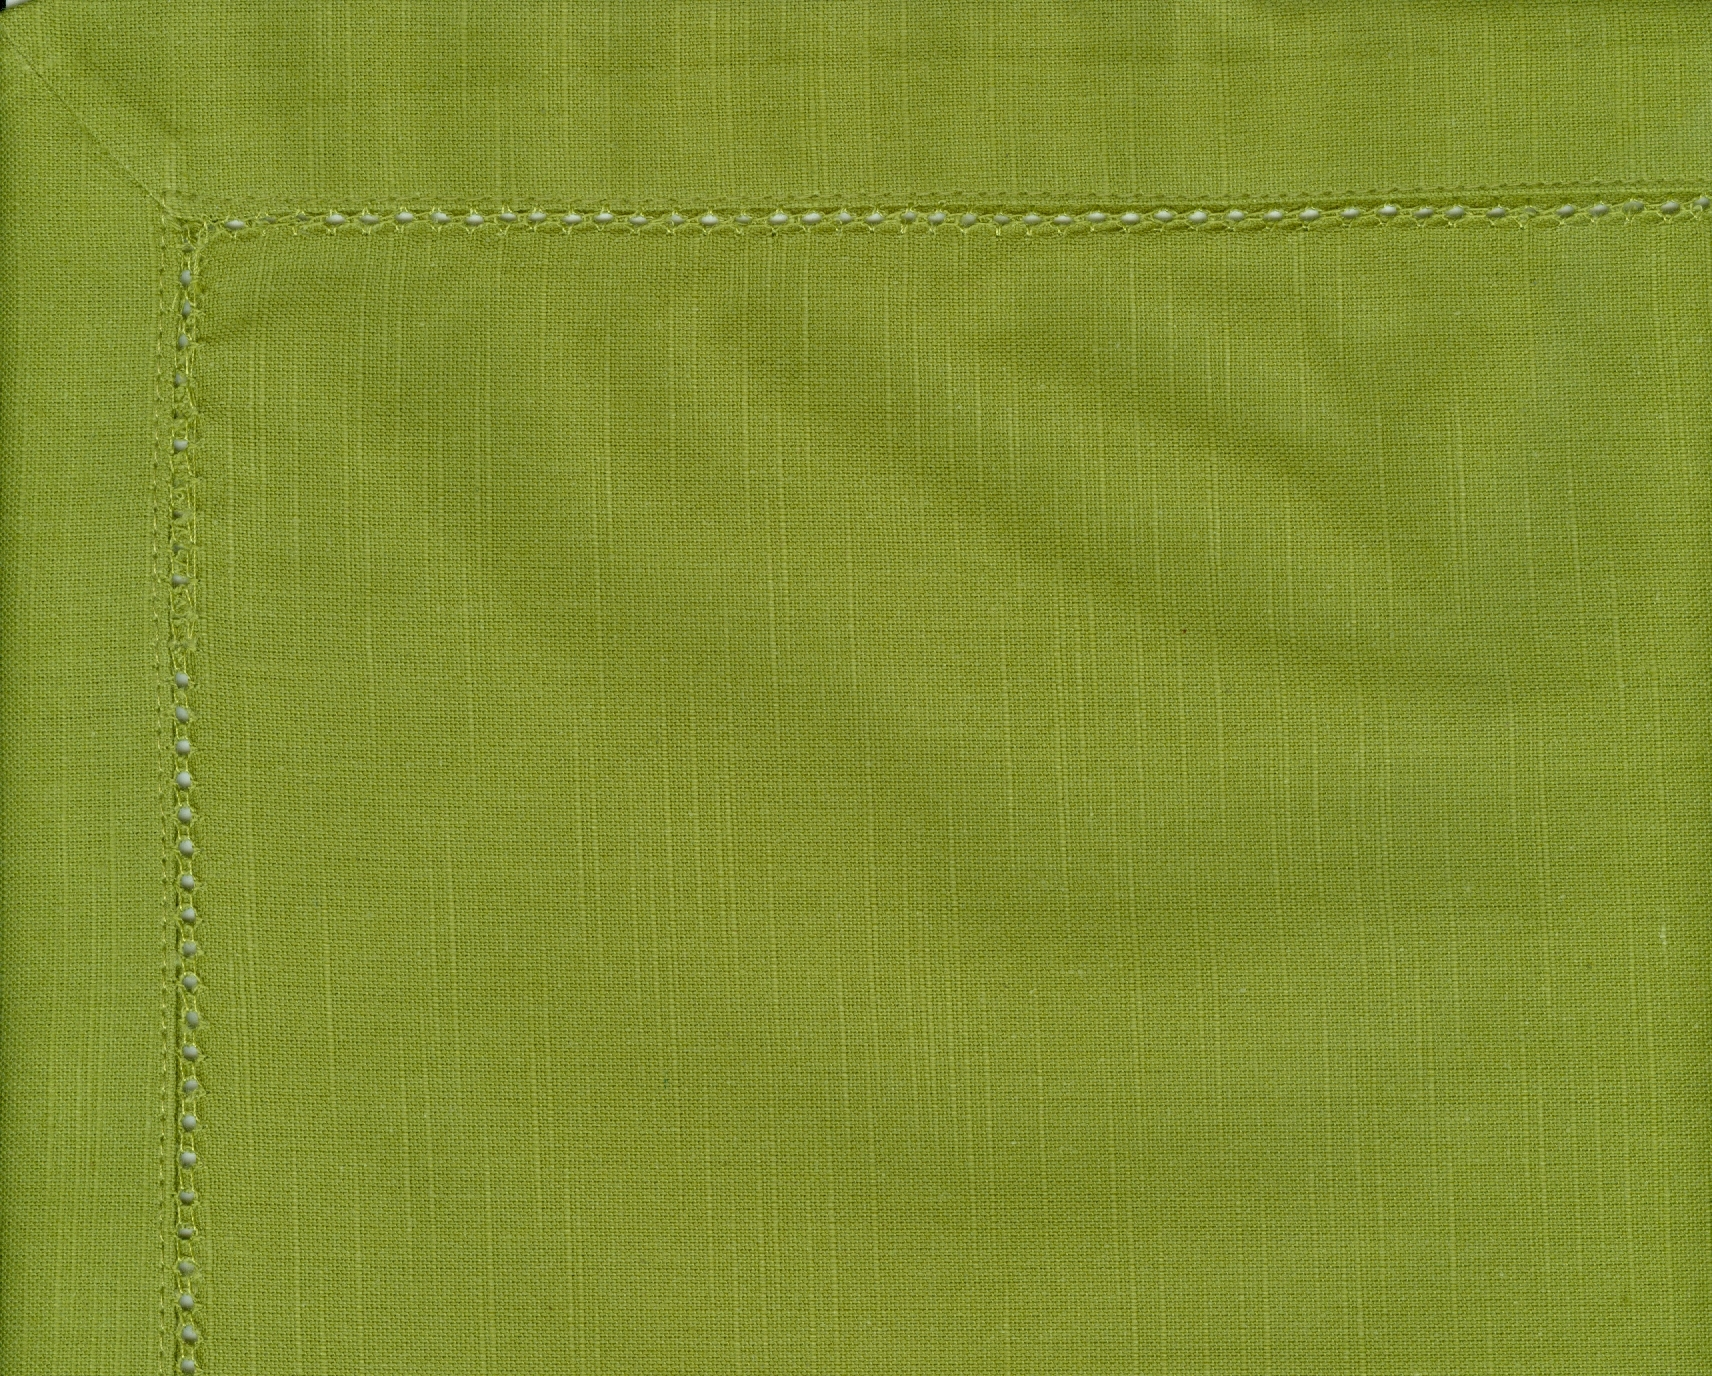 Avocado Hemstitch Napkin